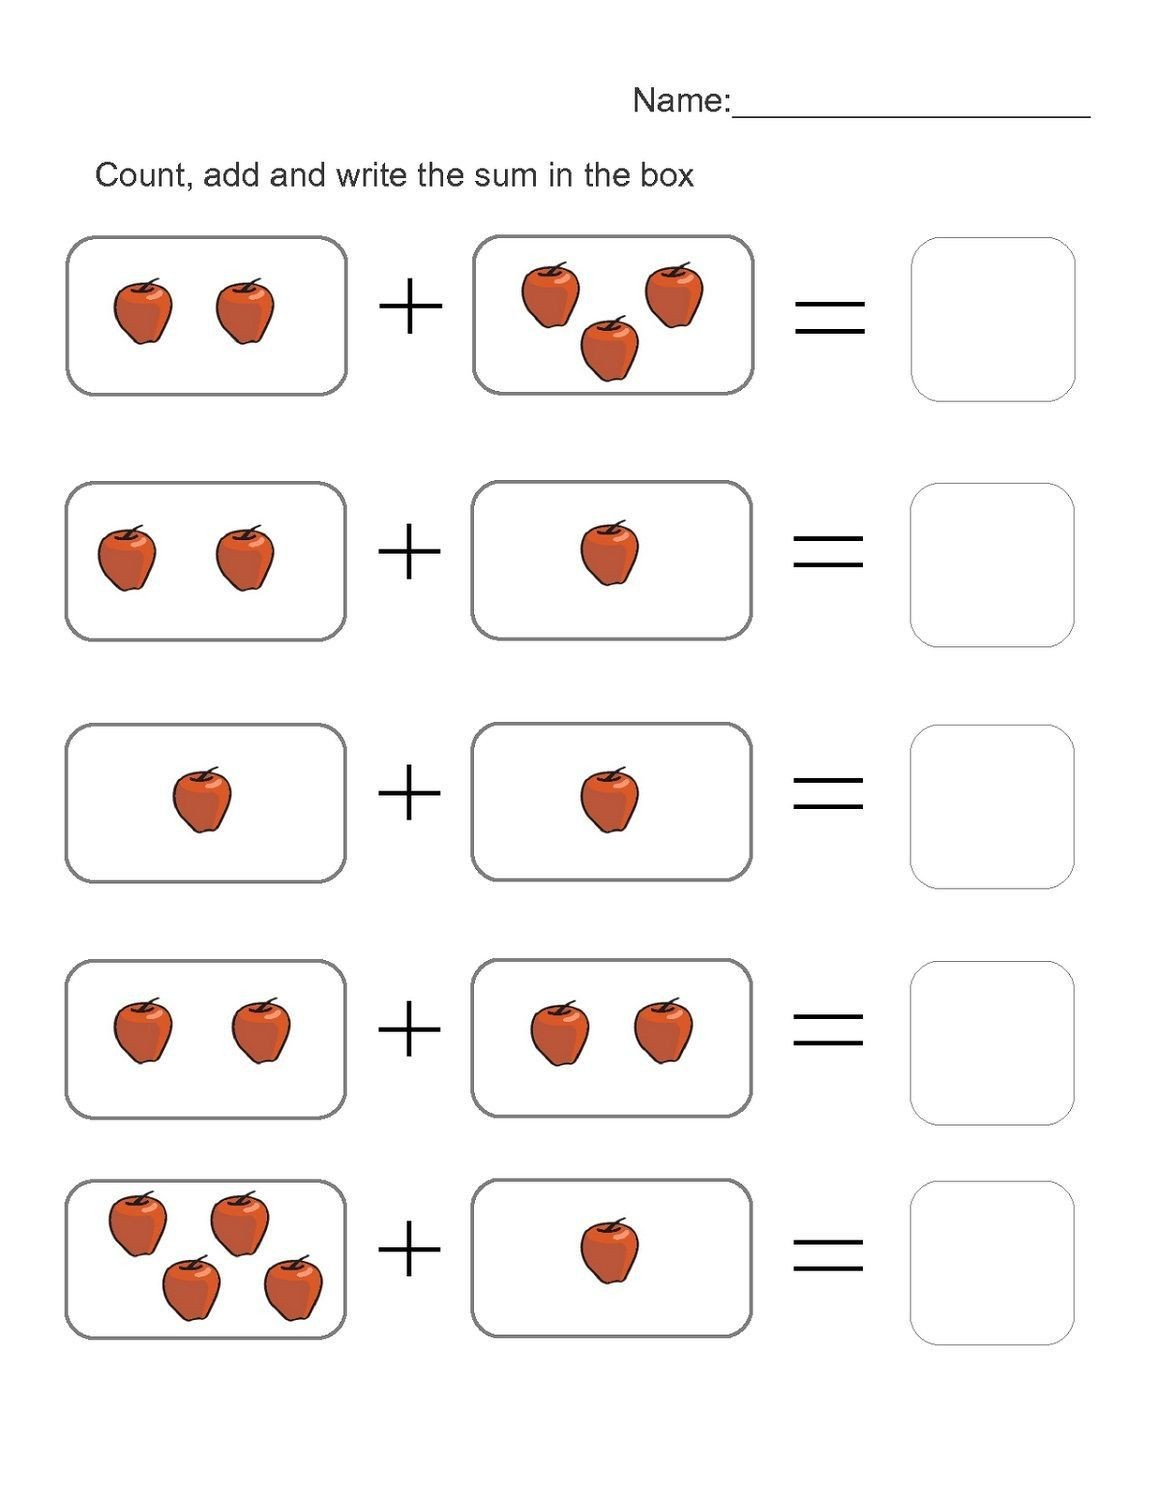 Preschool Addition Worksheets Printable 5 Count the Fruit Addition Worksheets In 2020